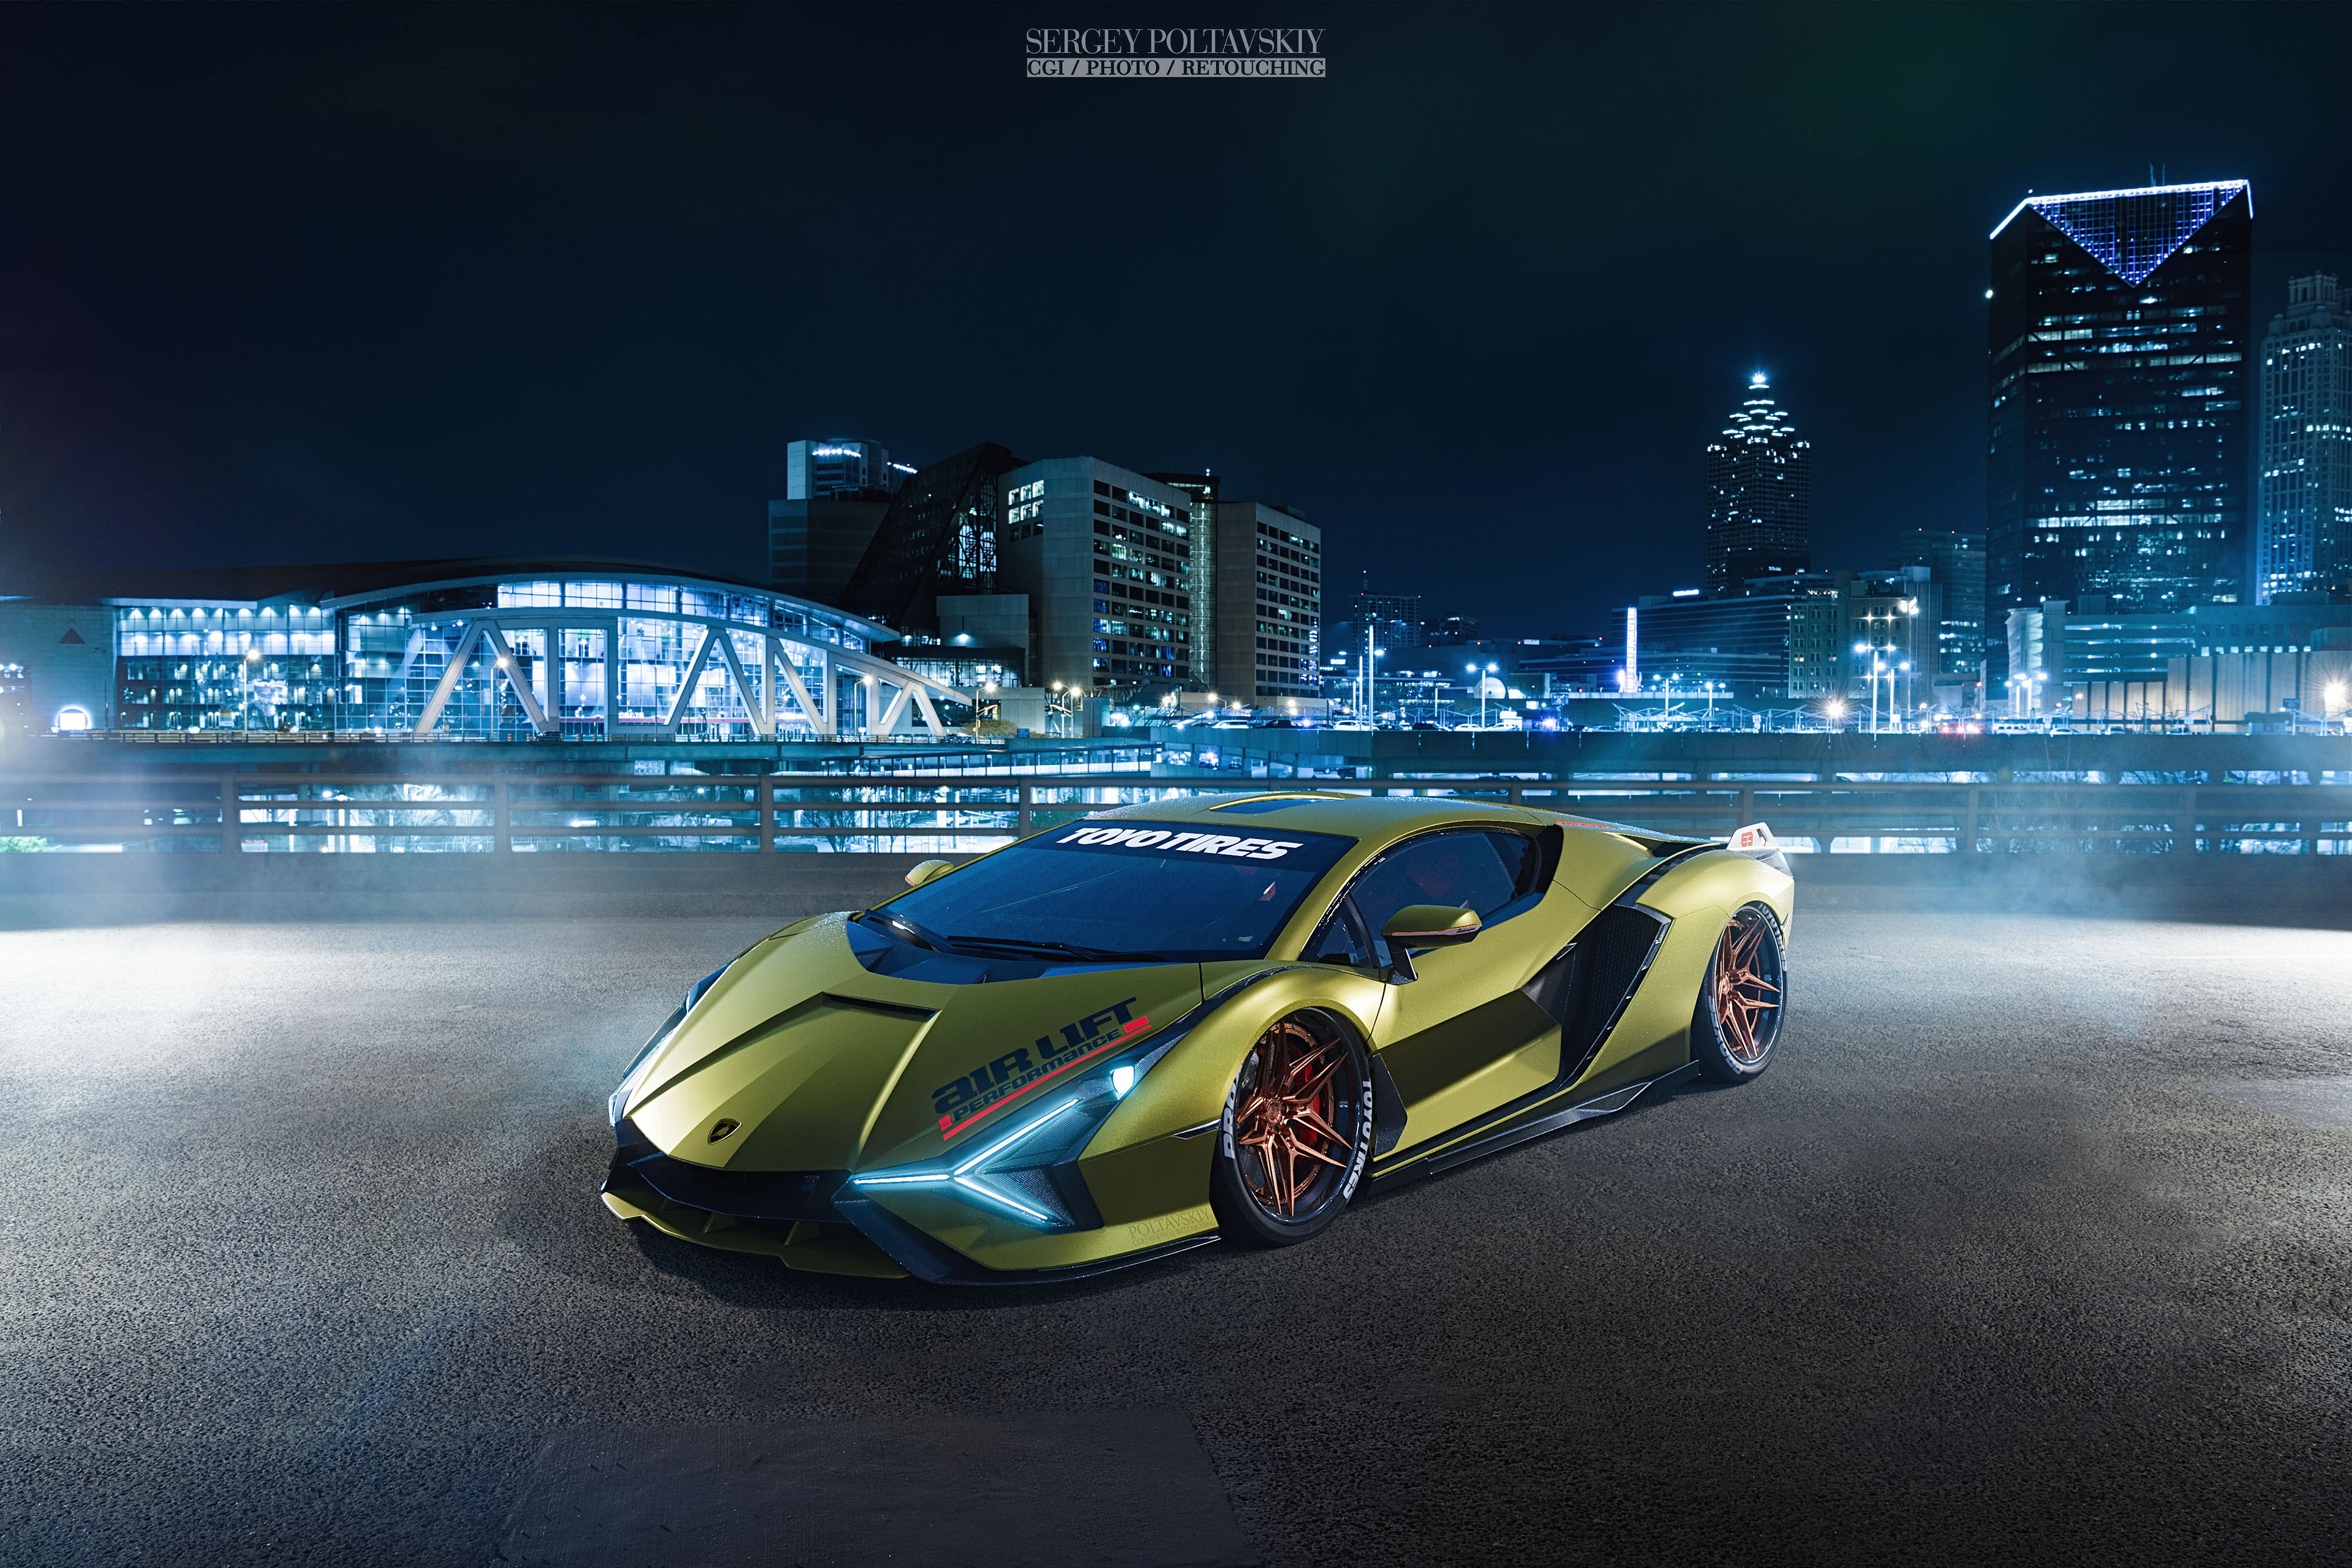 320x568 Lamborghini Terzo Millennio 2020 320x568 Resolution Hd 4k Wallpapers Images Backgrounds Photos And Pictures